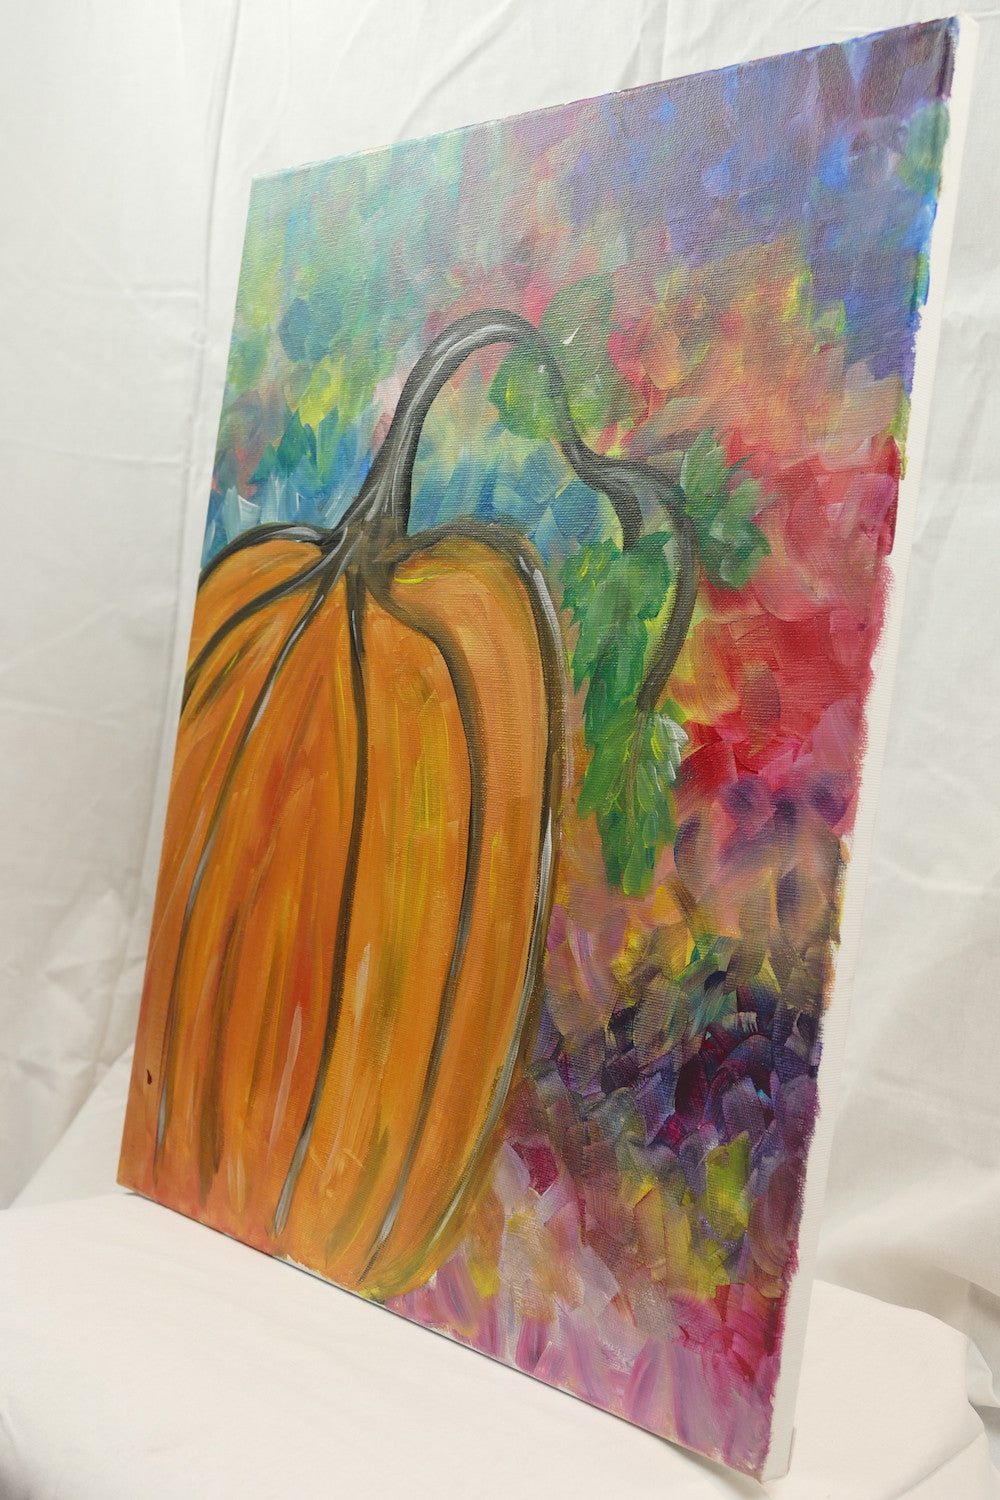 Pumpkin Painting - October 29th -  4:00pm - 5:30pm